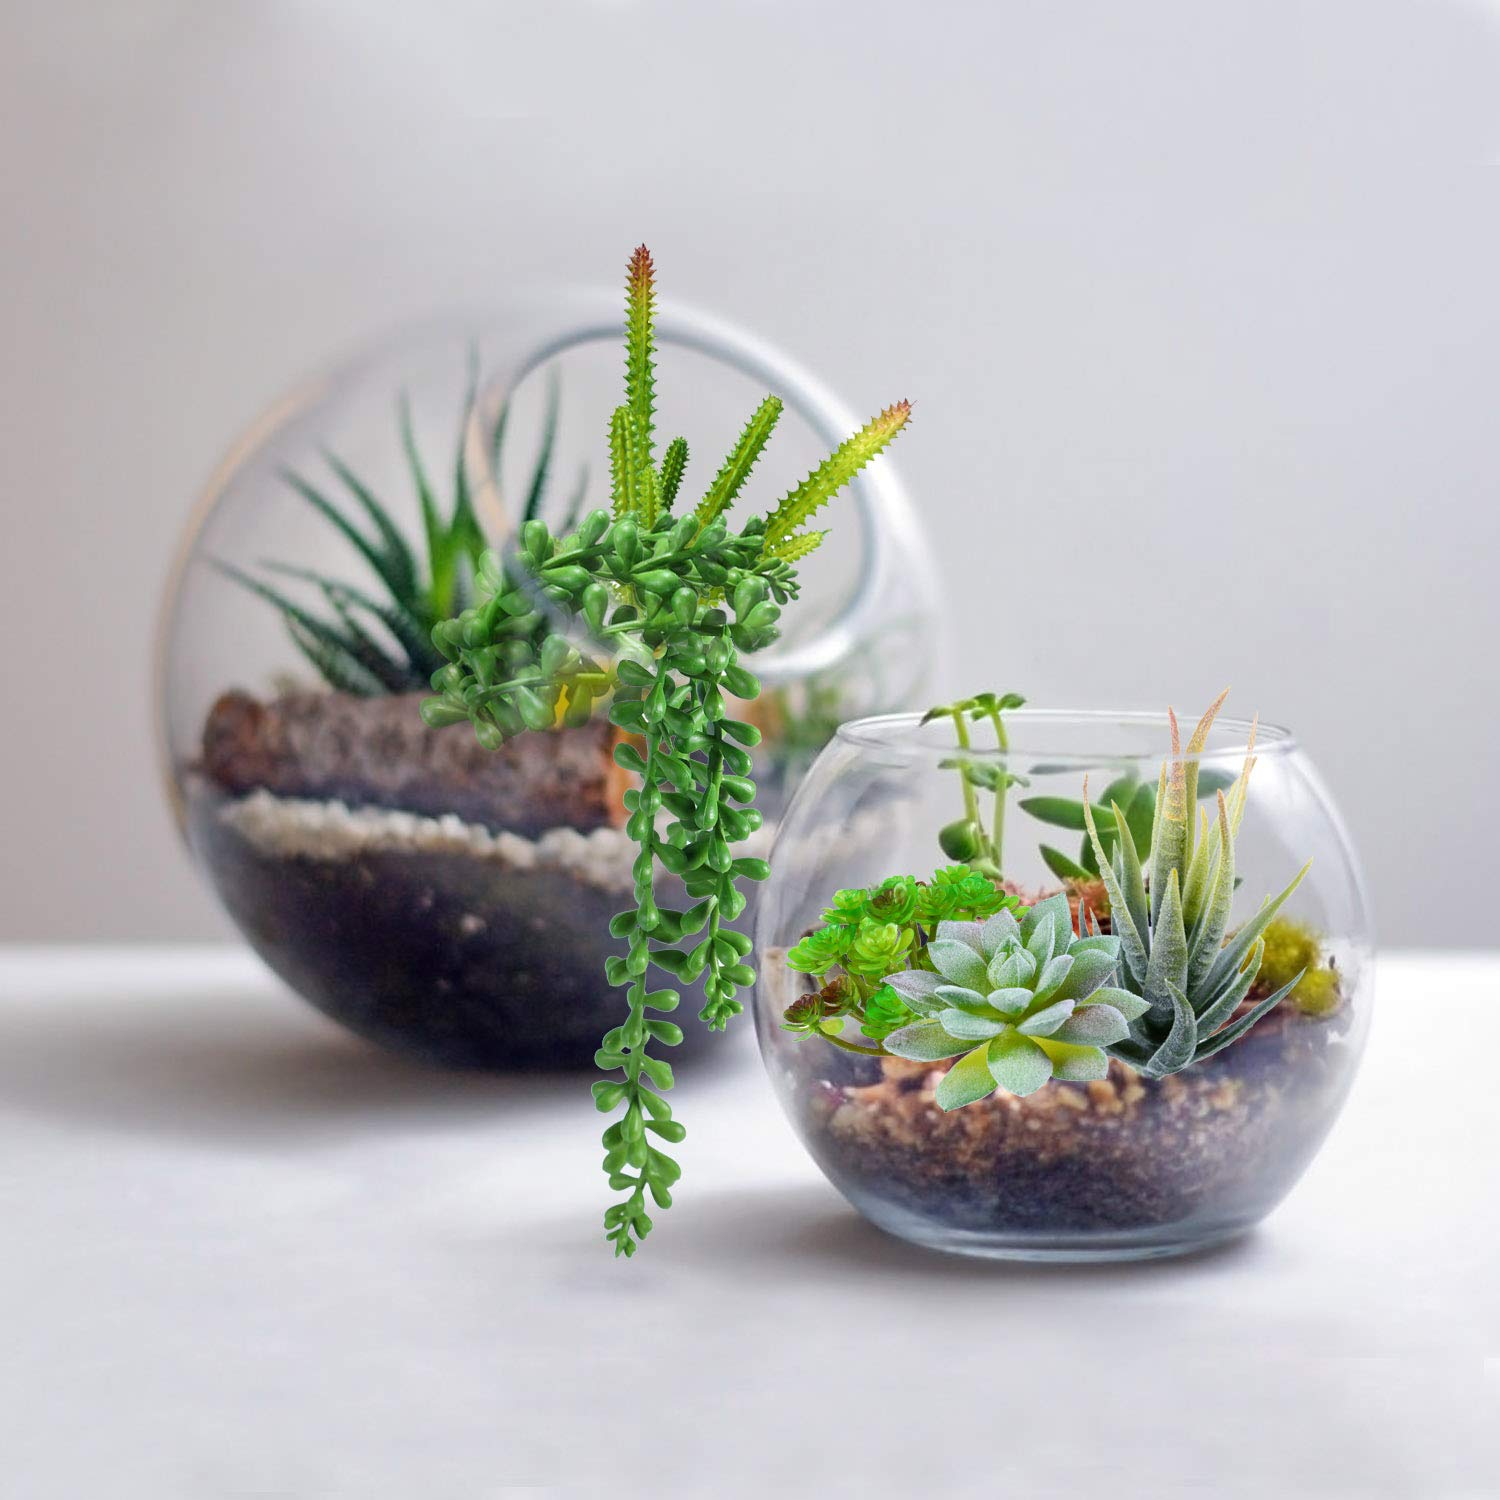 Beaspire Artificial Fake Succulent Plants 5 PCS Fake Plants Unpotted Faux Succulent Assorted for Indoor or Outdoor Decor, Office and Garden Arrangements Decoration